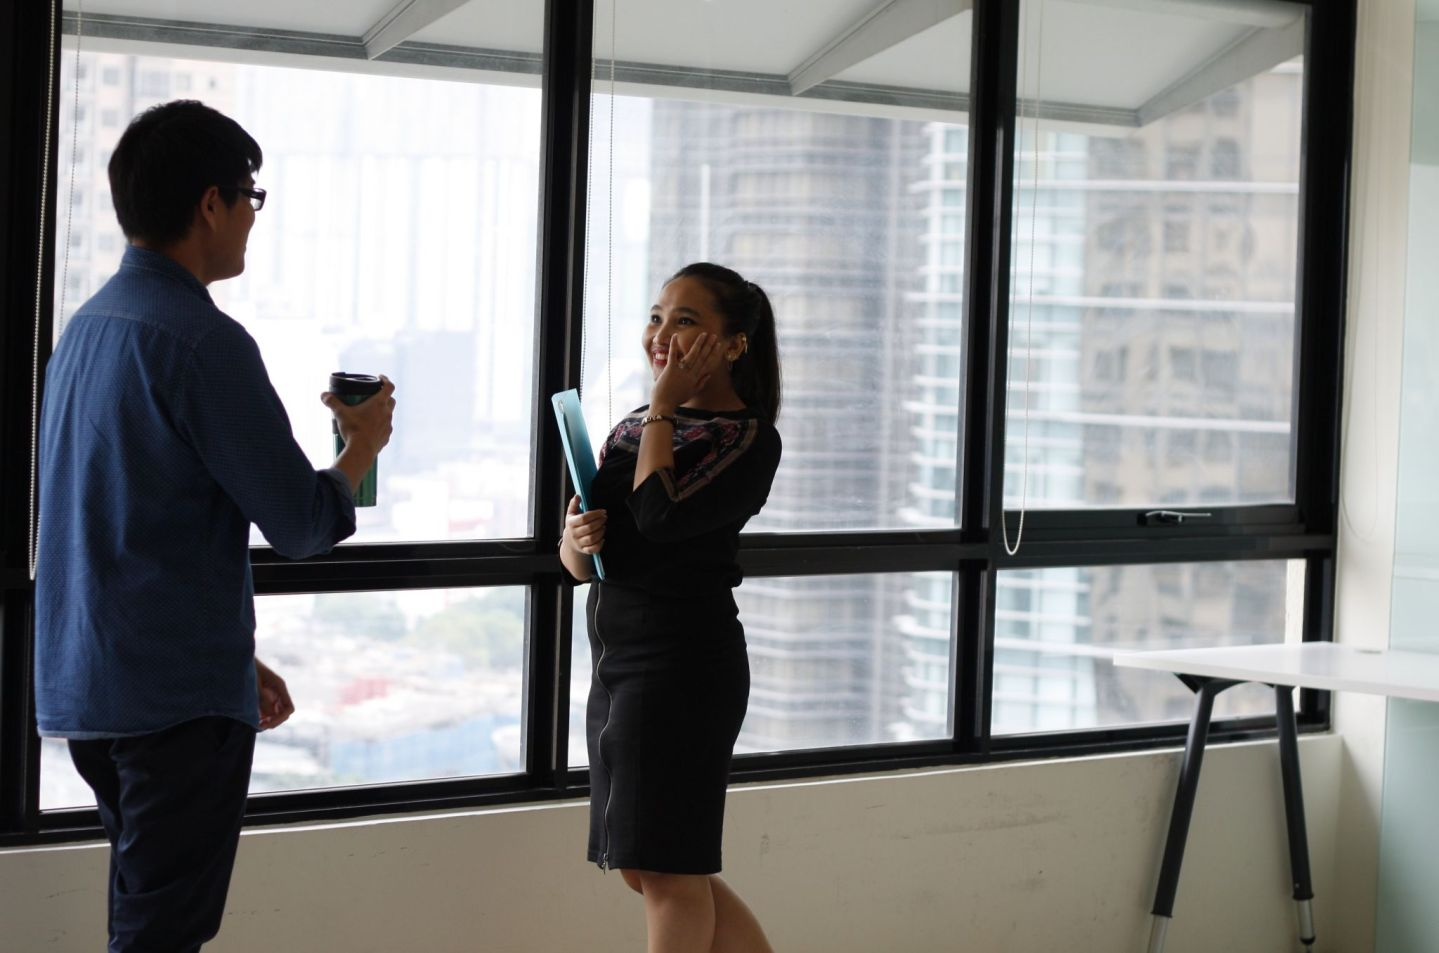 Why It's Never A Good Idea To Date A Colleague